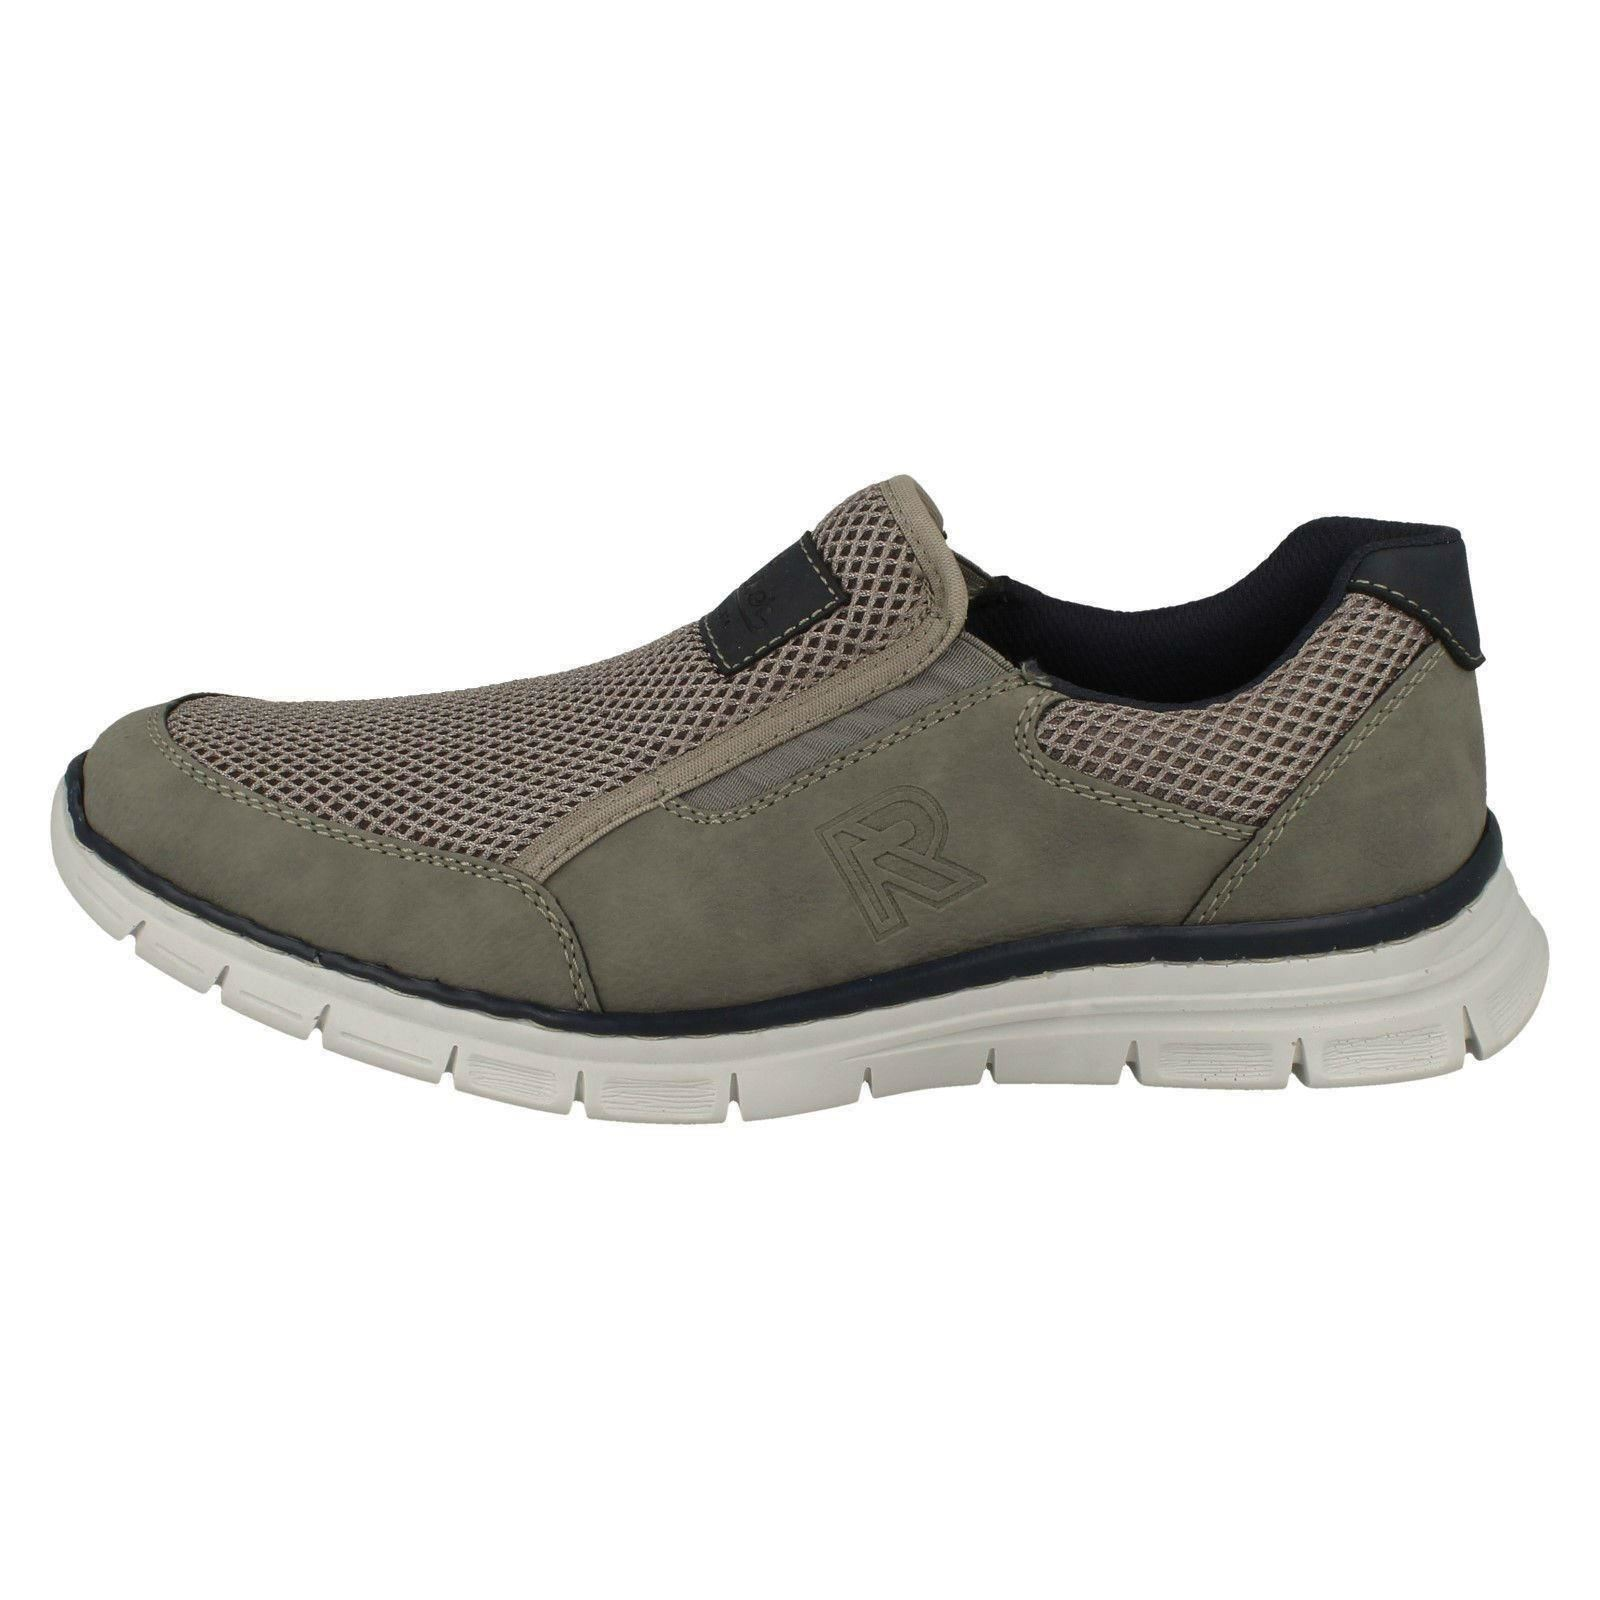 Rieker Uomo Rieker  Stylish Slip-On Schuhes B4873 b26284